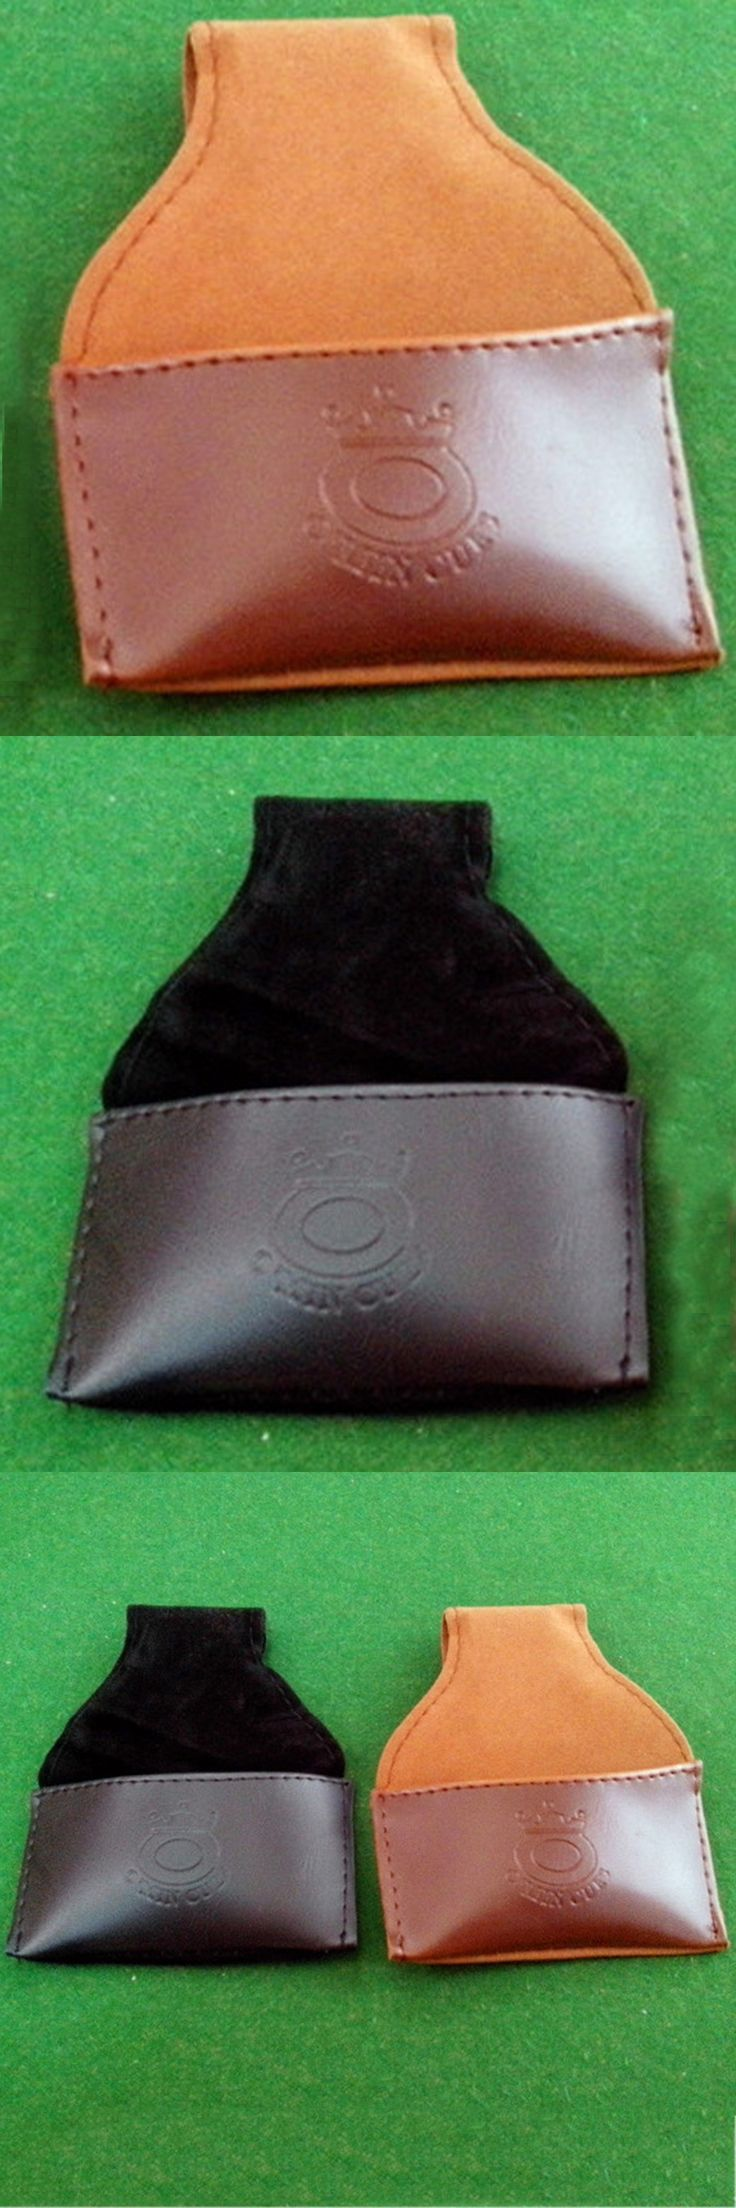 Synthetic Leather PU Snooker Billiard Chalk Holder Pouch Bag with Clip Pool Billiards Accessories